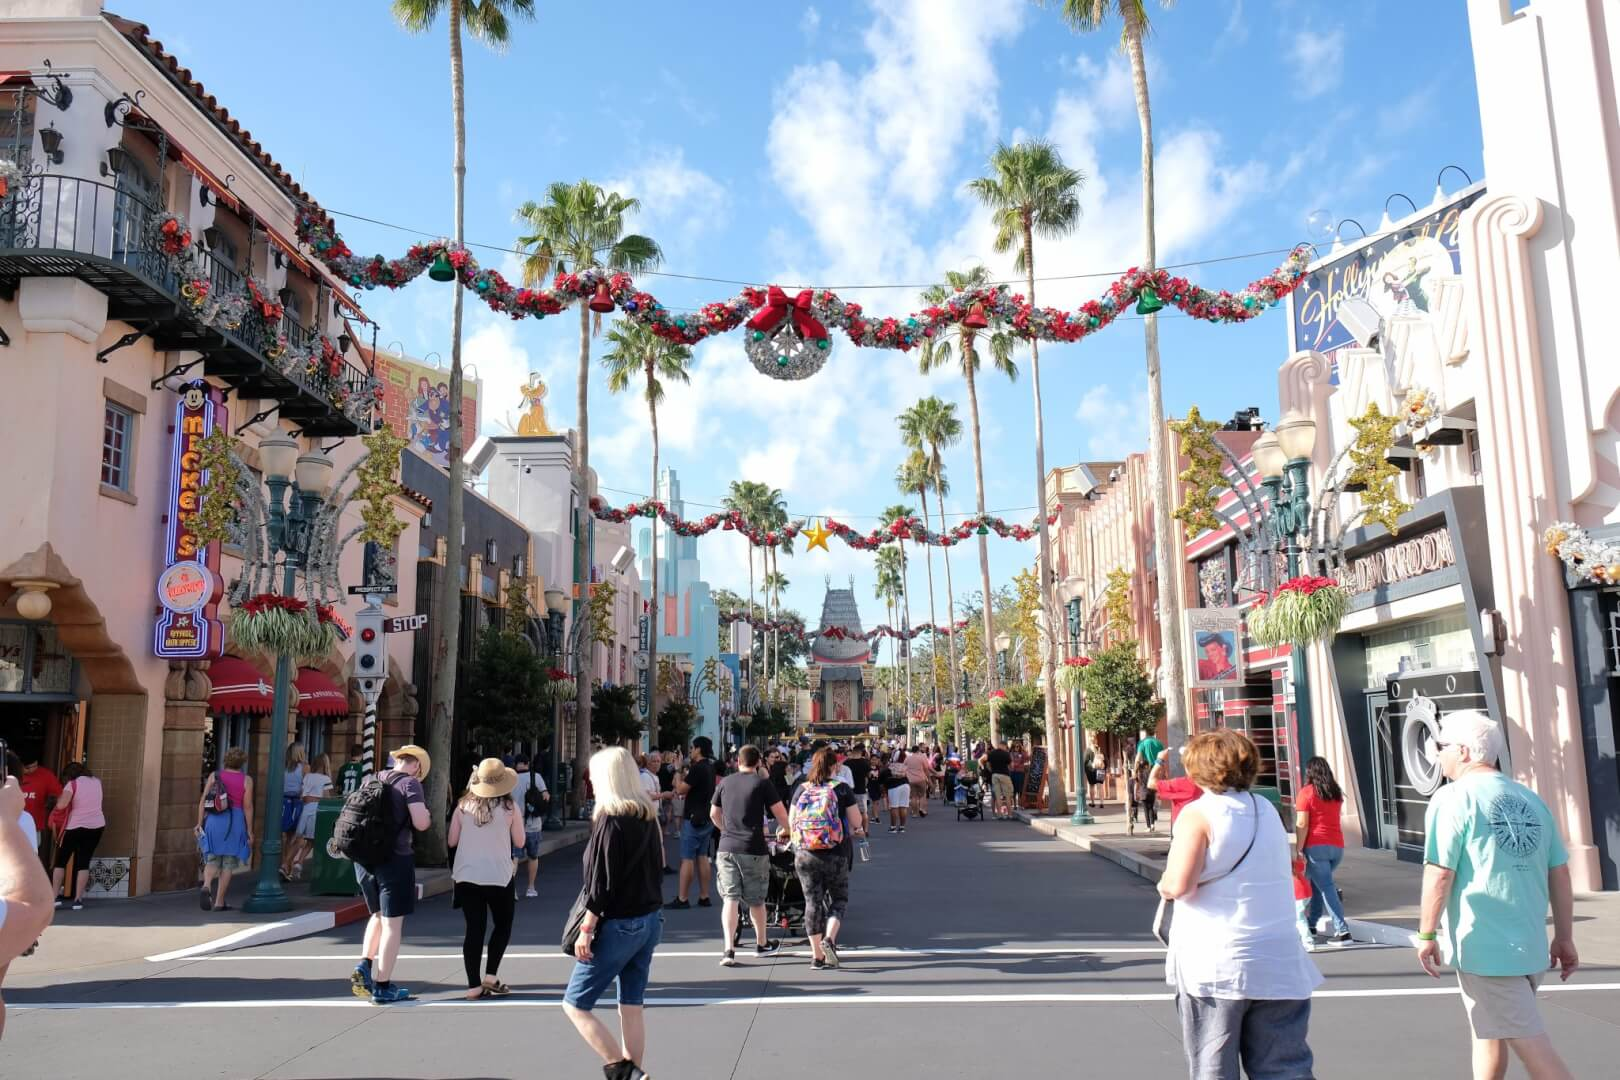 The Decorations Completely Take Over Hollywood Boulevard, Which Contains Wreaths,